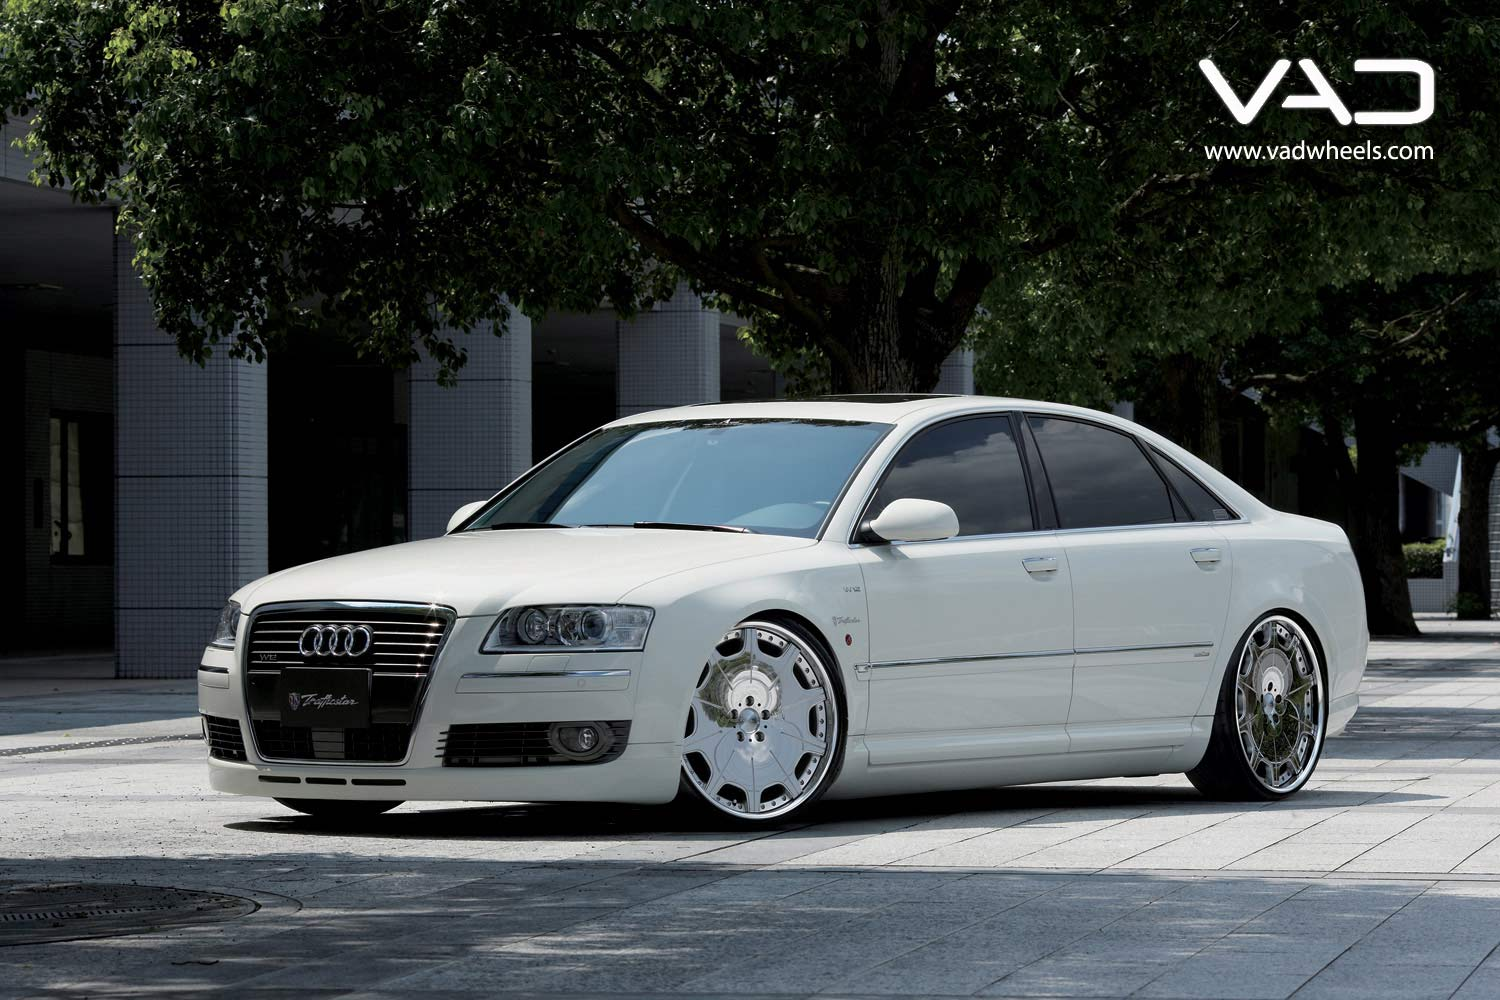 Audi-A8-Fitted-With-21''-Trafficstar-DTX